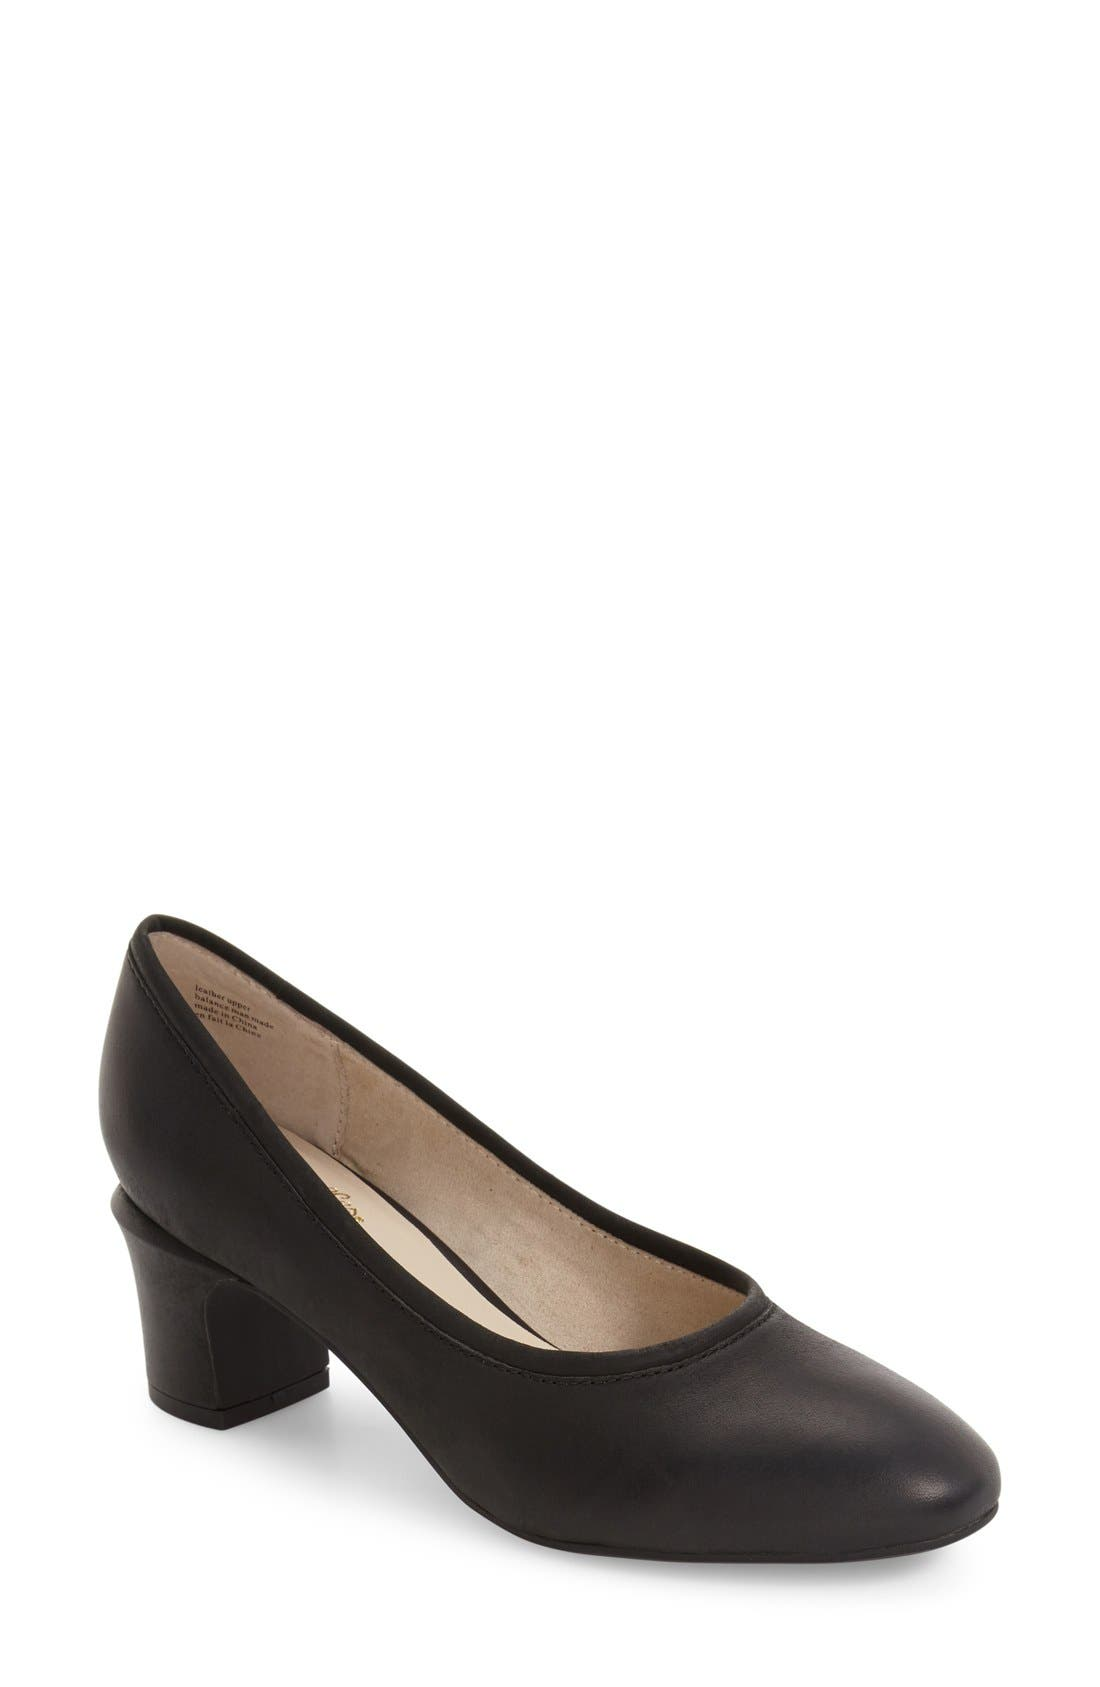 Alternate Image 1 Selected - Seychelles Canopy Beveled Heel Pump (Women)